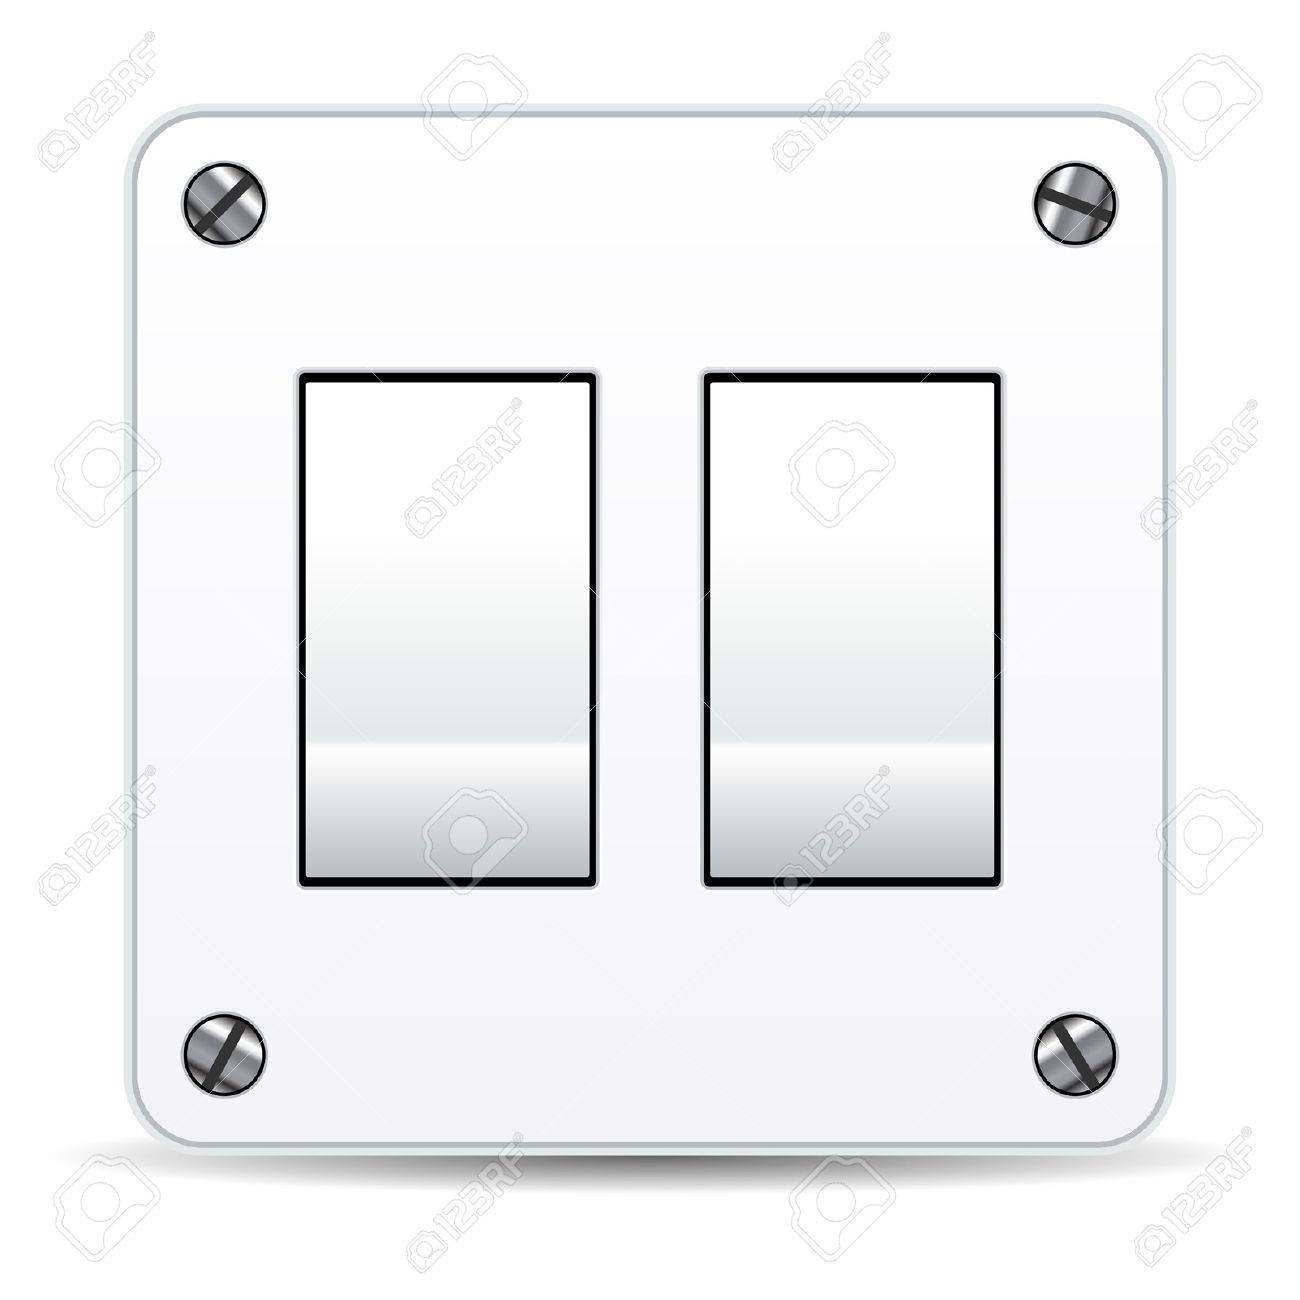 Dual Light Switch Isolated Over White Background Royalty Free ...